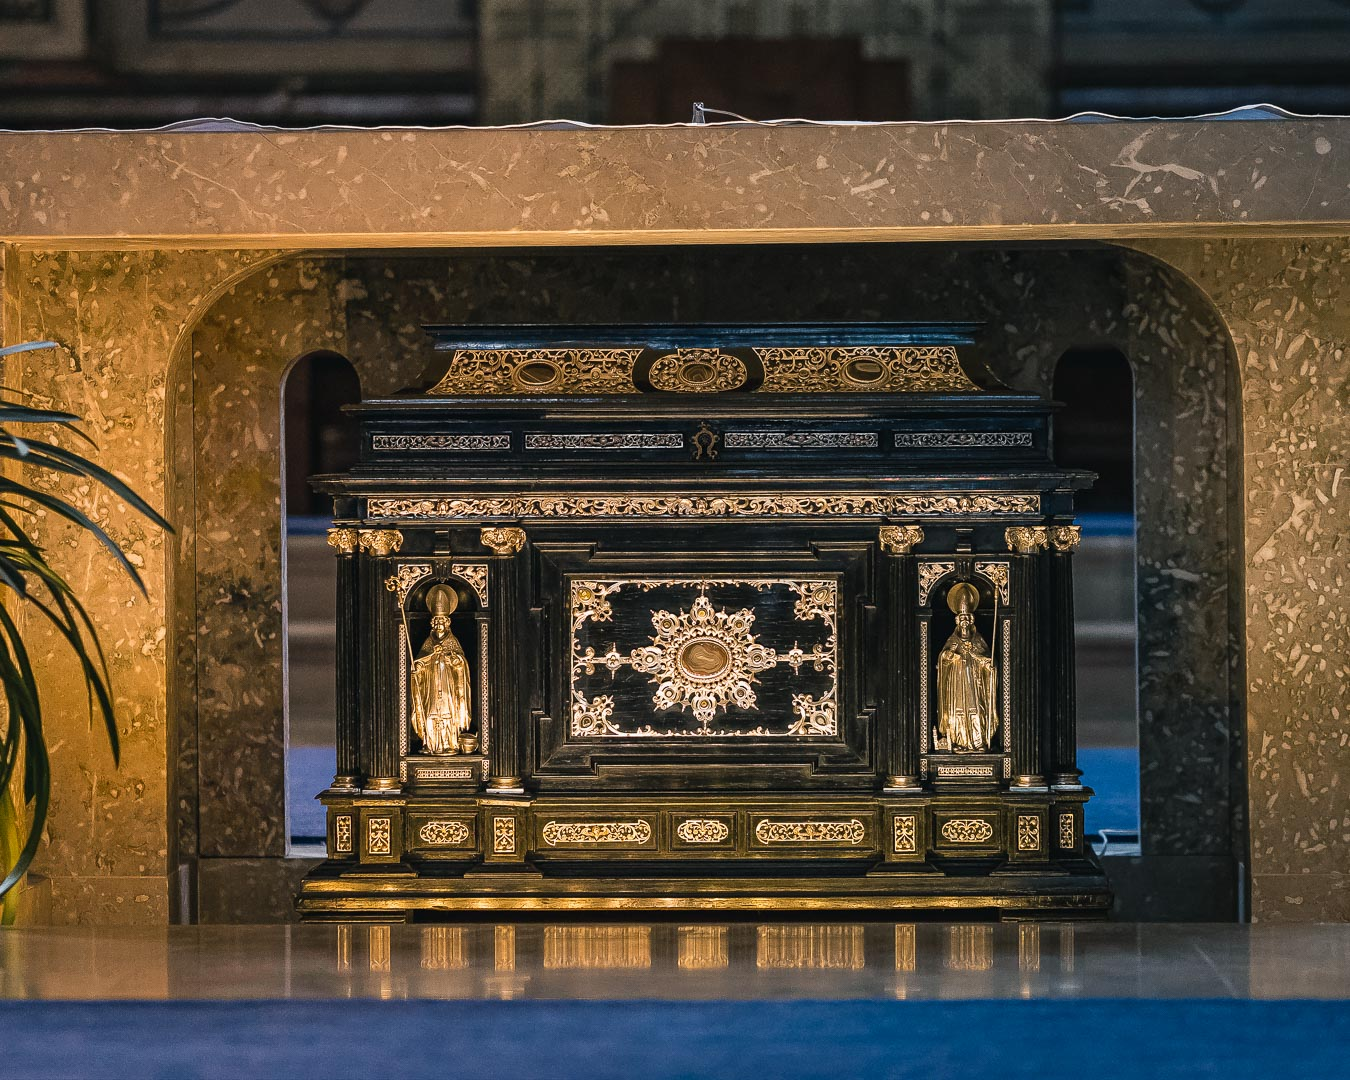 Saint Ruperts Relics in the Salzburg Cathedral